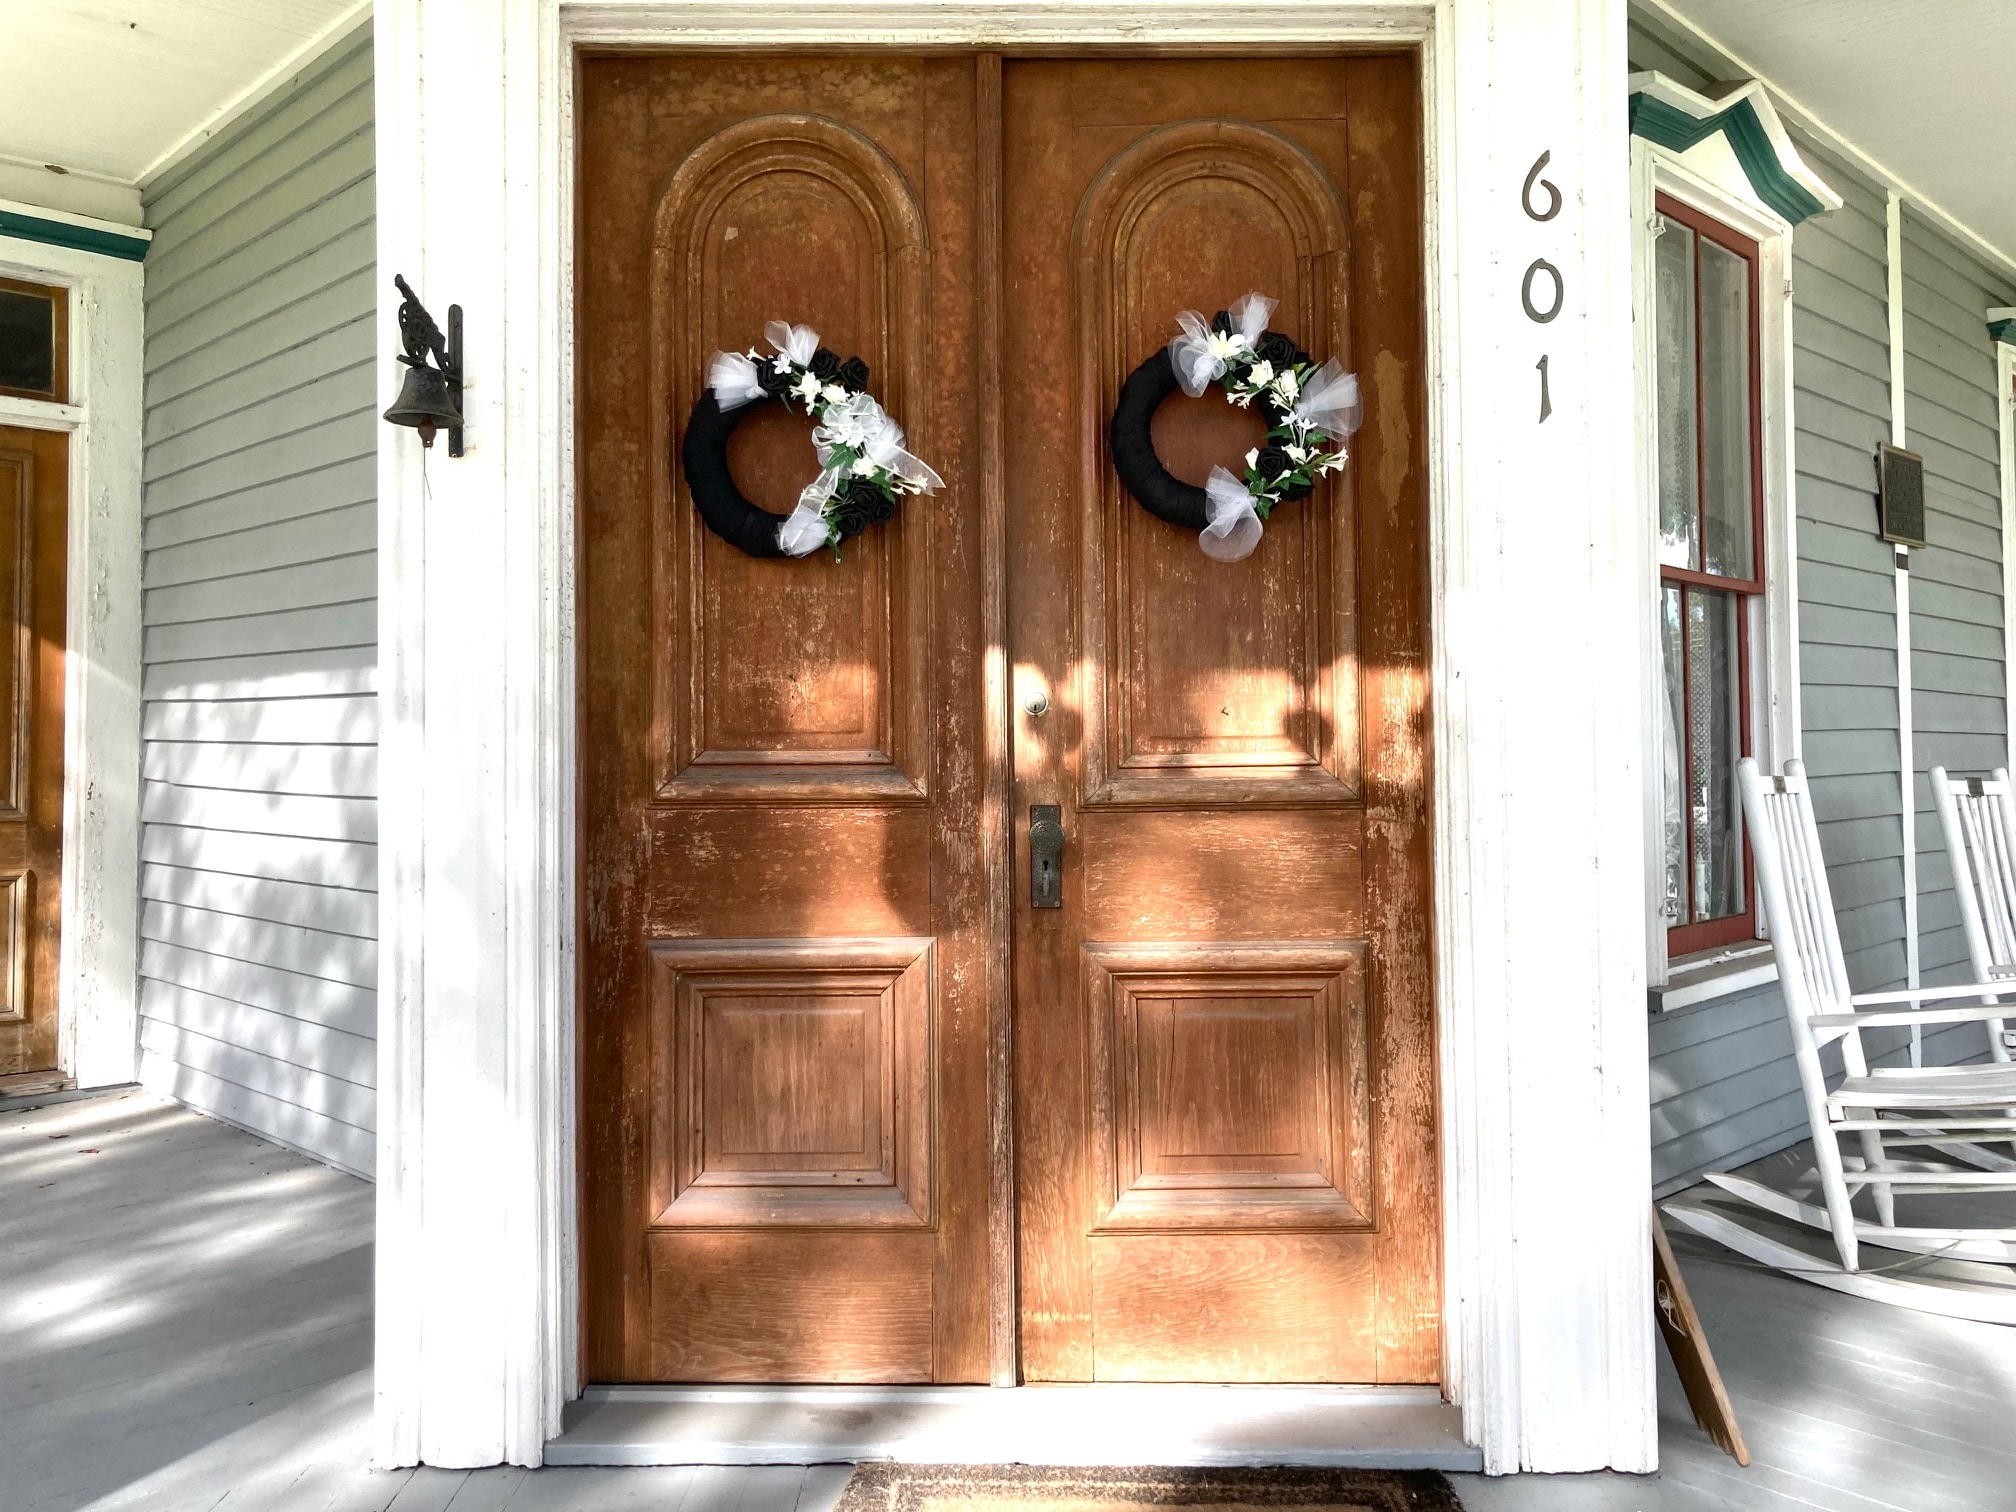 Mourning wreaths on the front doors of the May-Stringer Museum in Brooksville